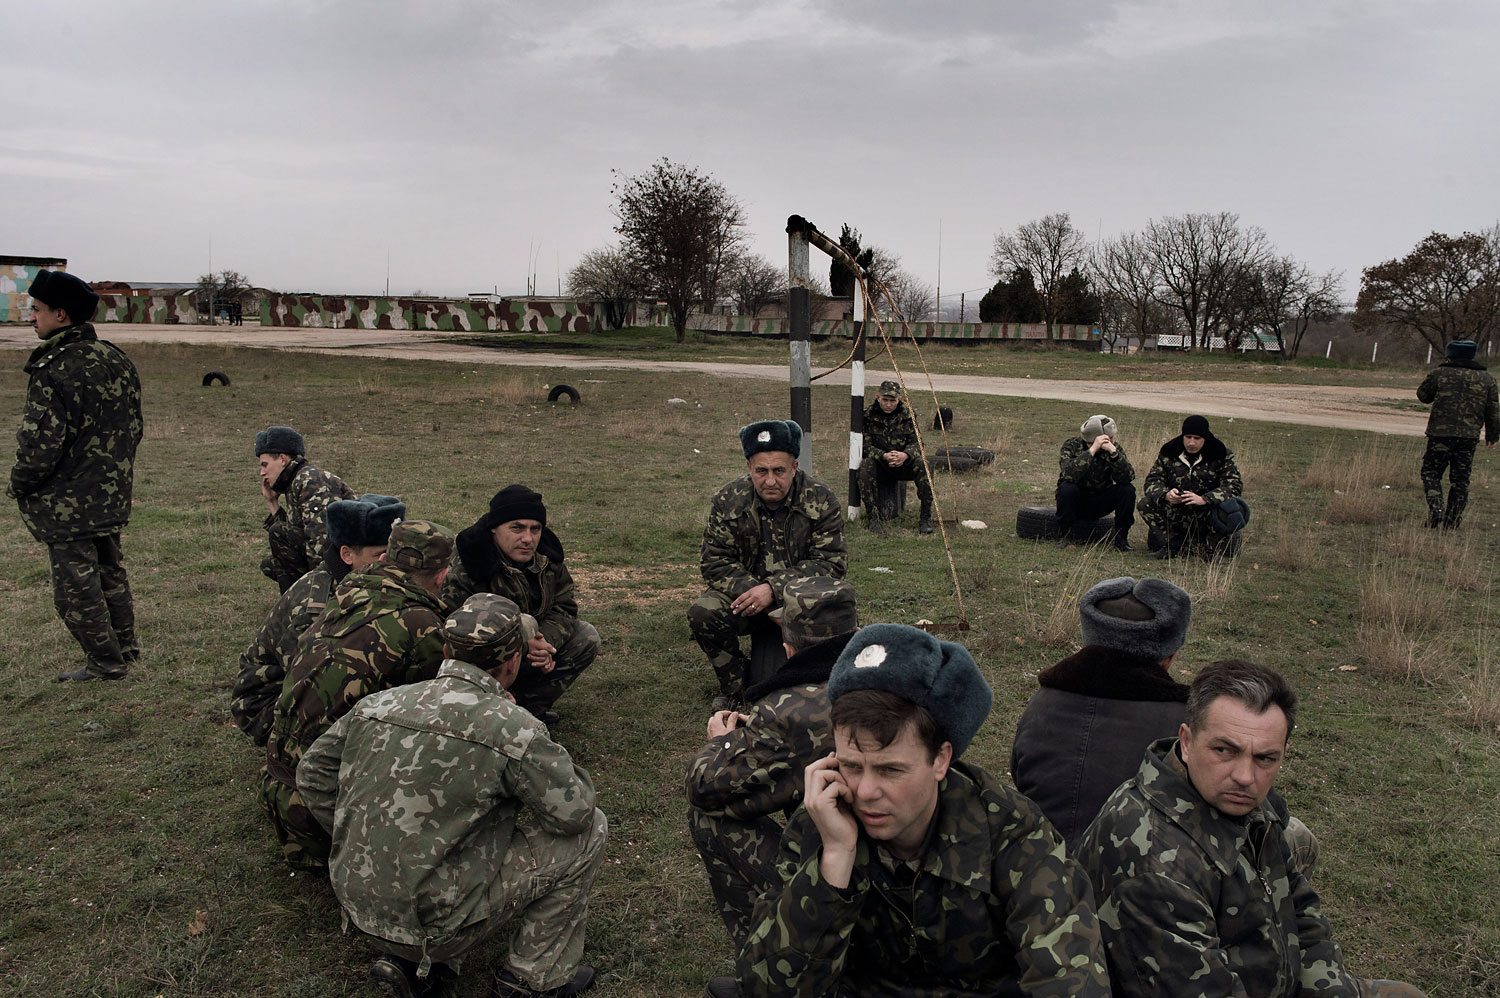 Ukrainian soldiers at the Belbek air force base in Crimea, March 4, 2014.